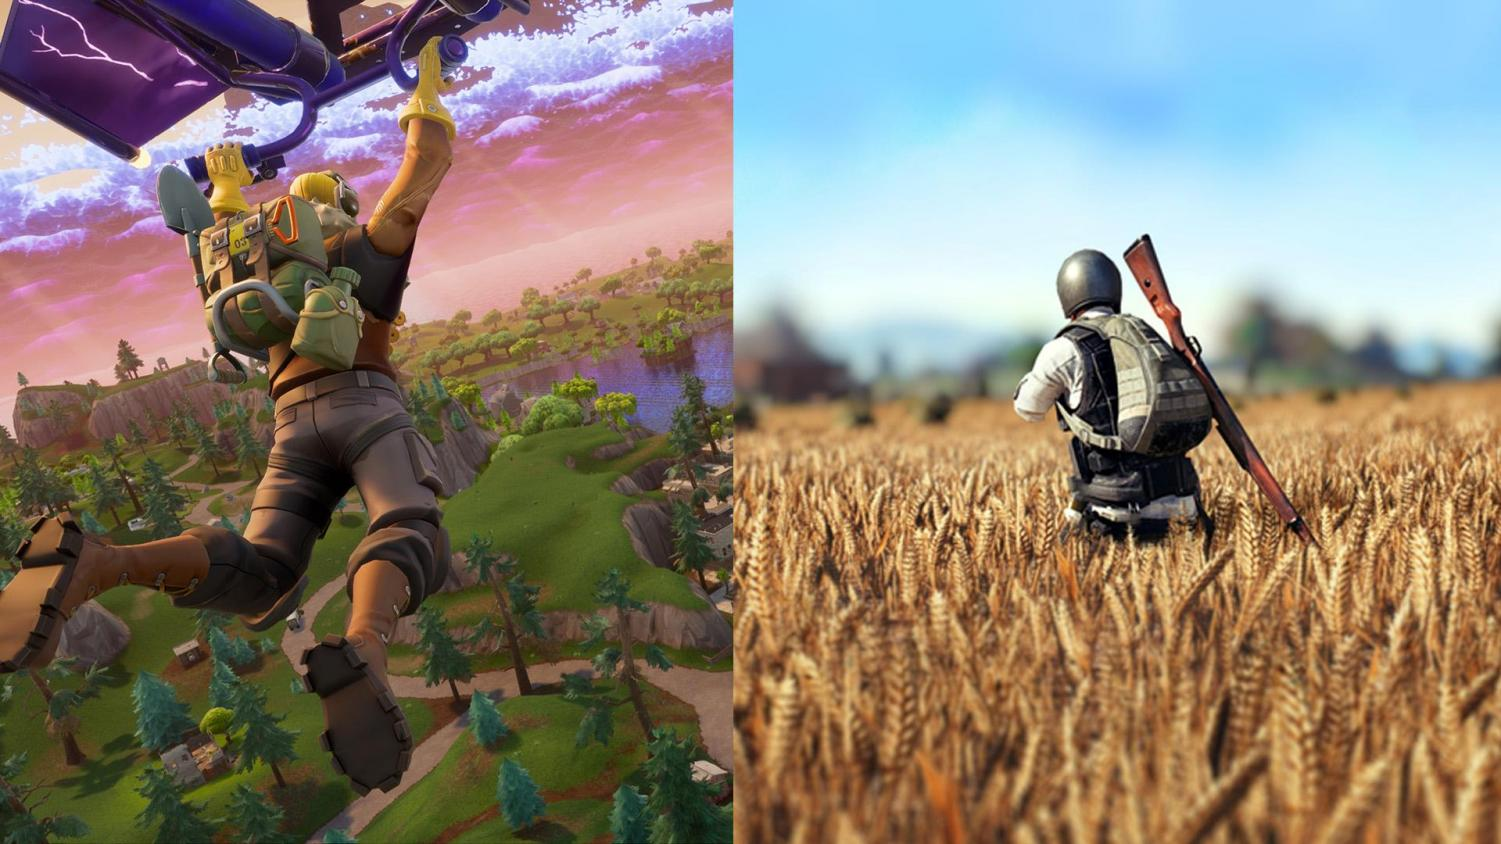 On the left is Fortnite on the right is PUBG (Player Unknowns Battleground.)